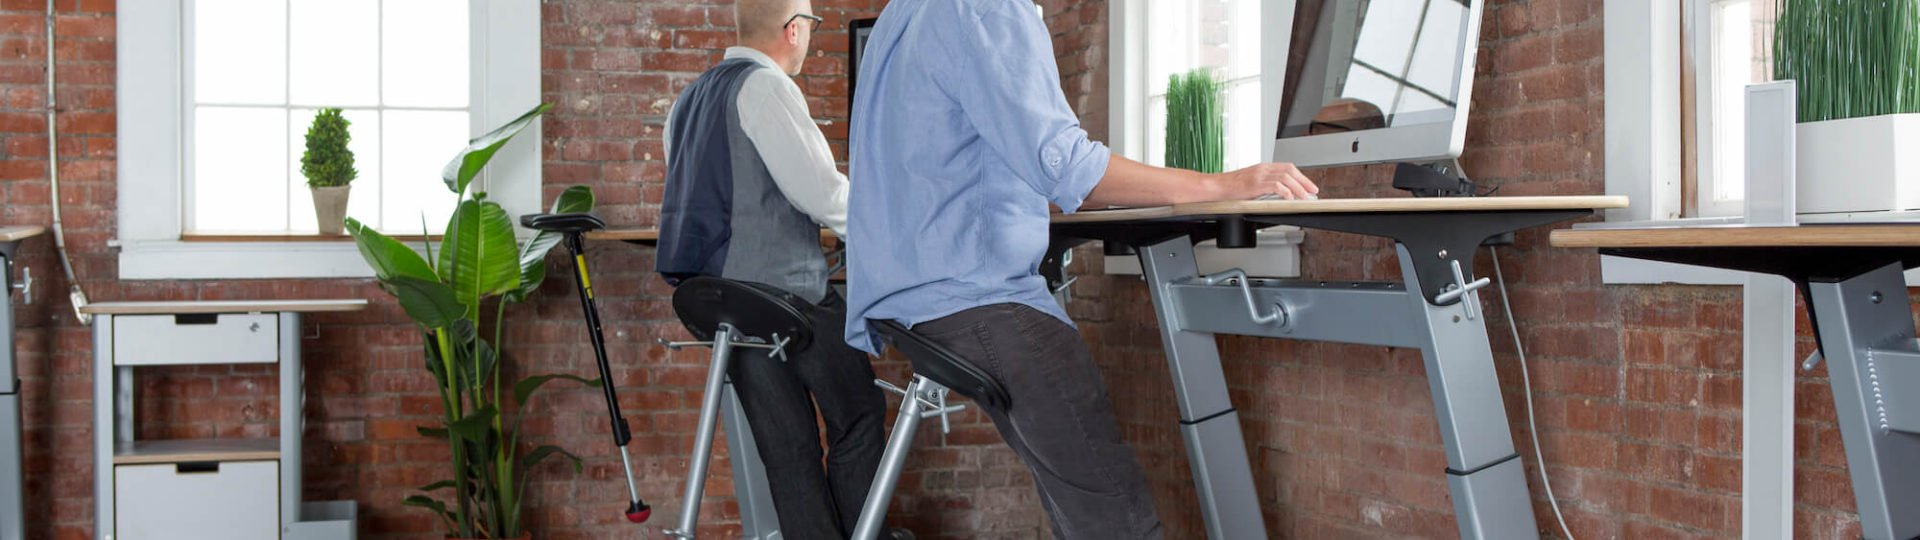 focal upright by Safco ergonomic desk